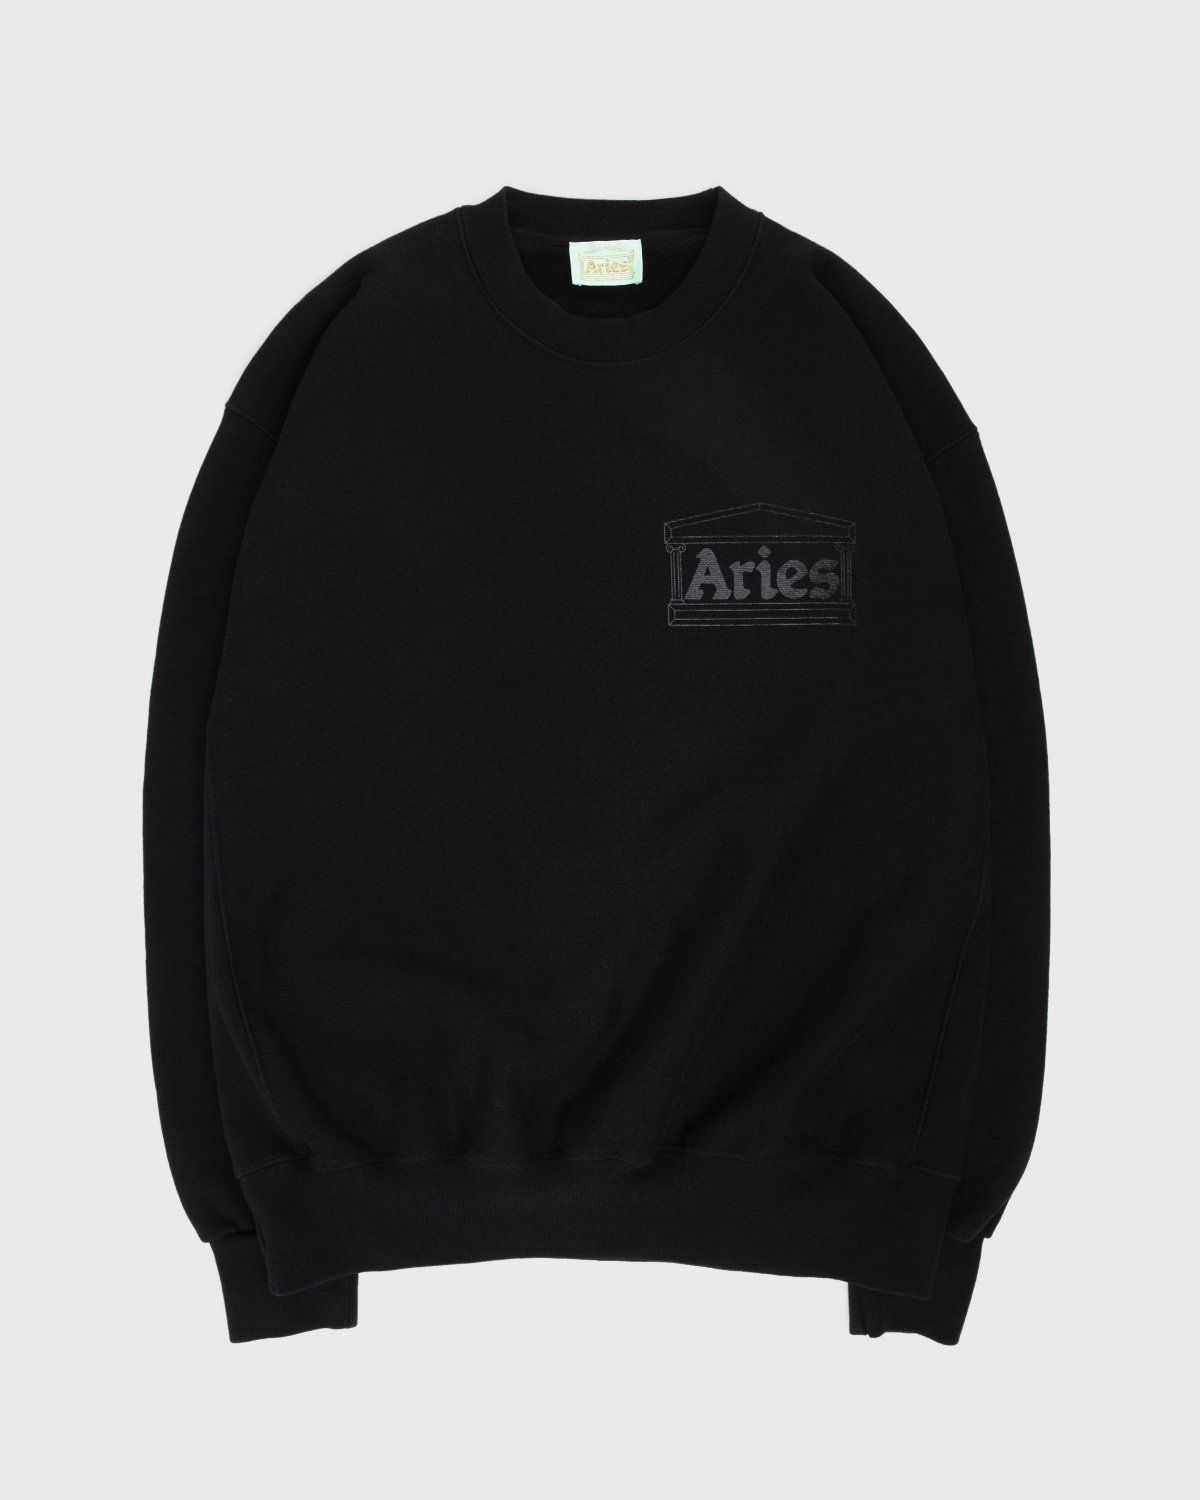 Aries - Premium Temple Sweatshirt Black - Image 1